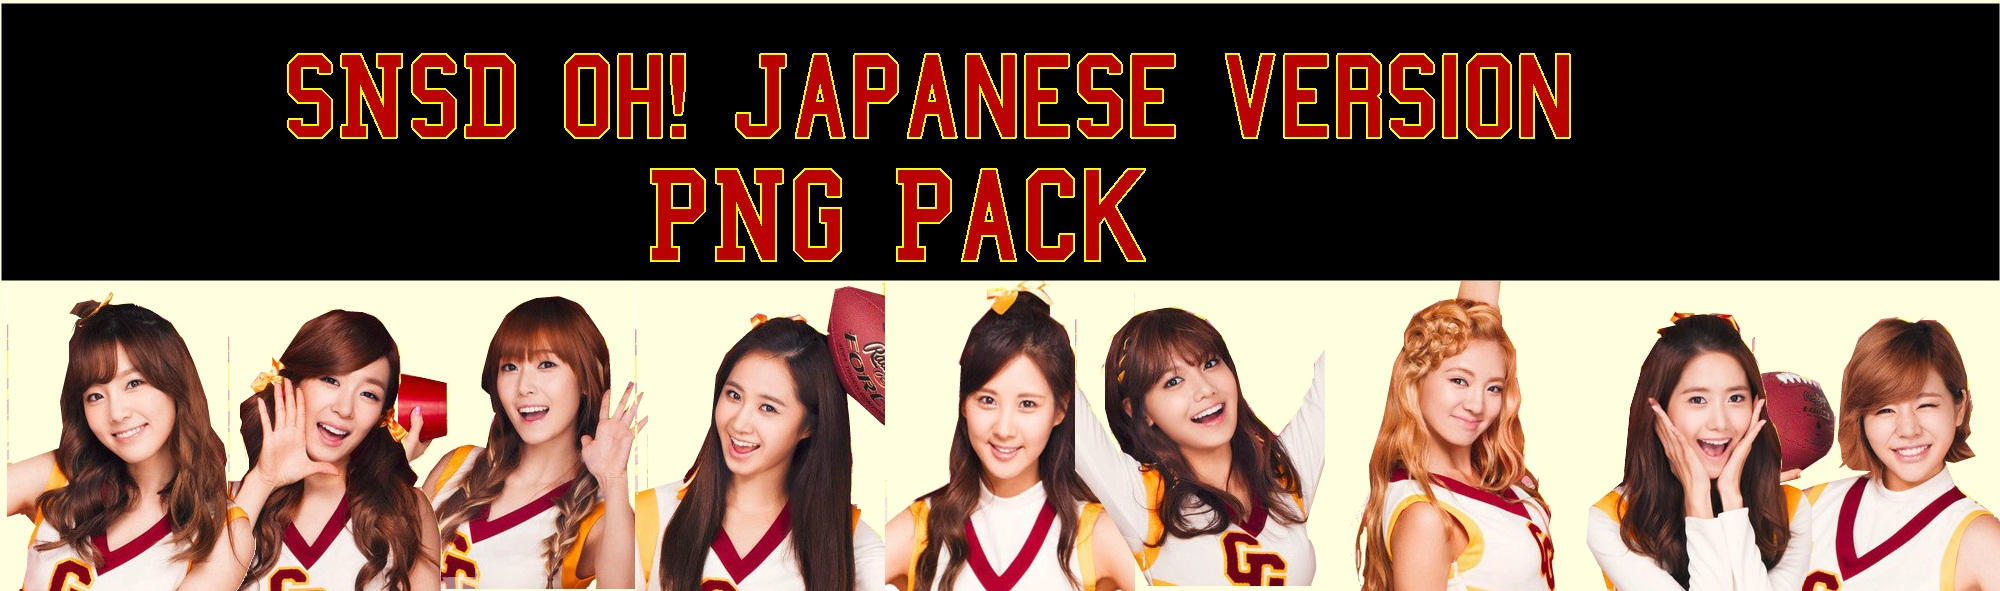 SNSD Oh! Japanese Version PNG Pack by Kpopified